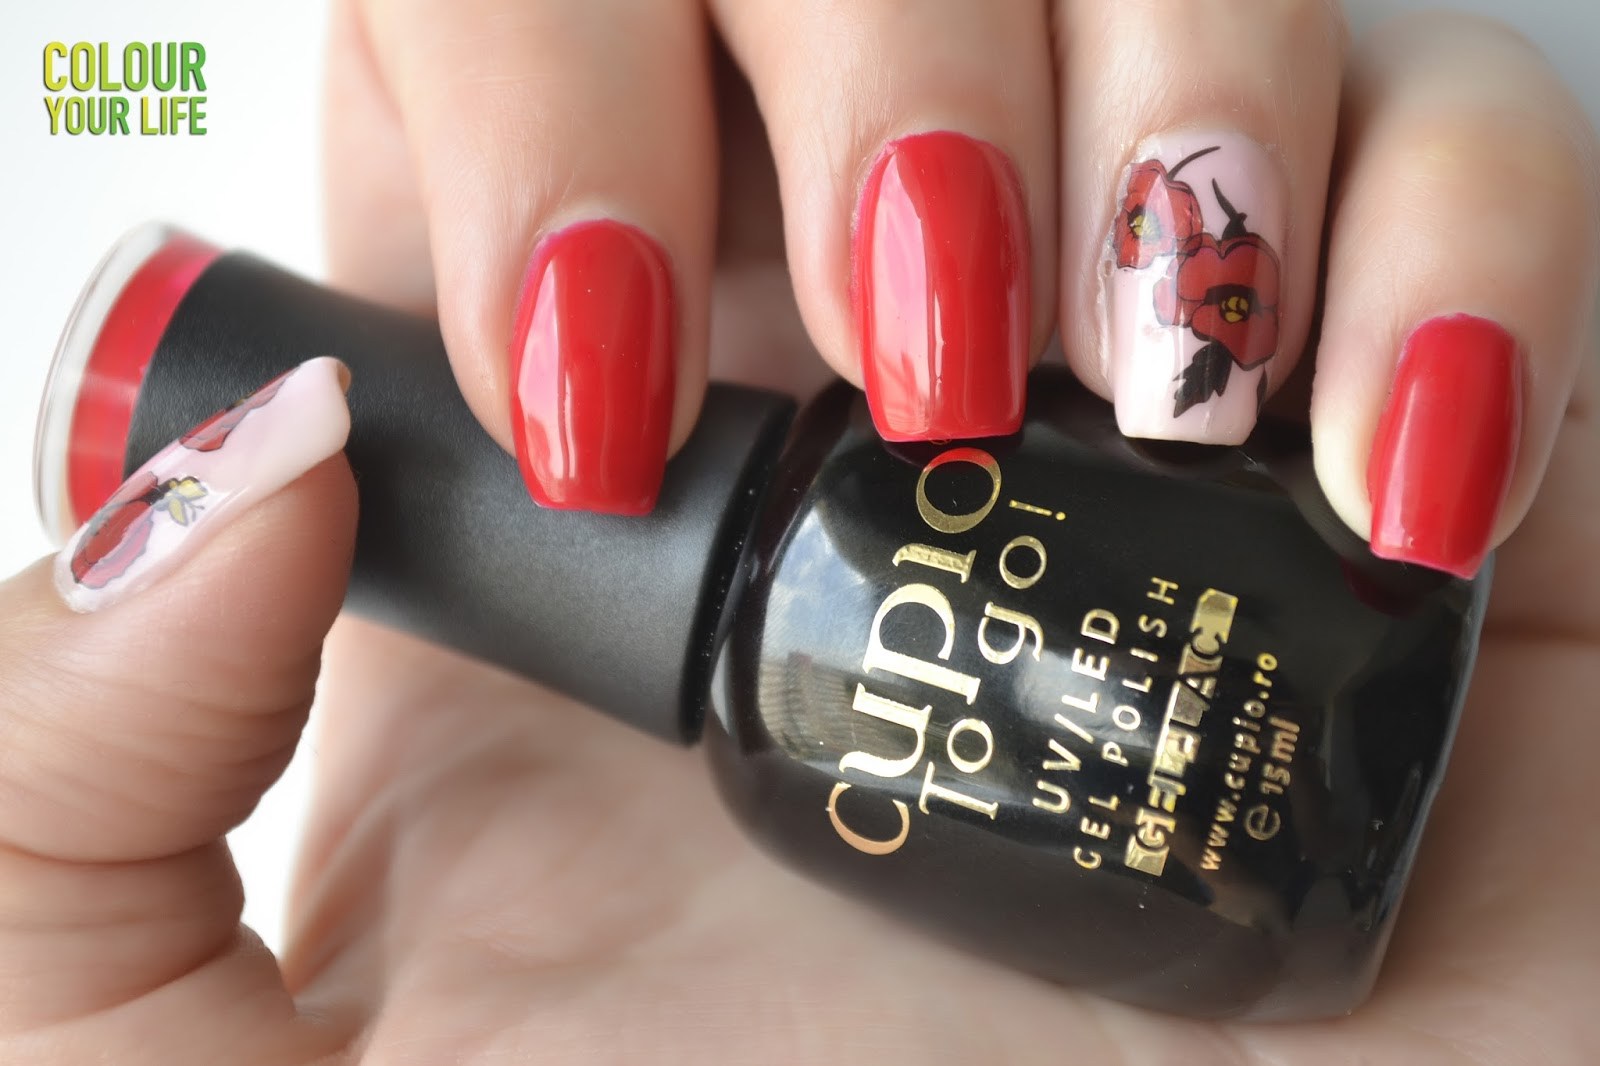 Colour your life: Gel polish for the first time on my nails